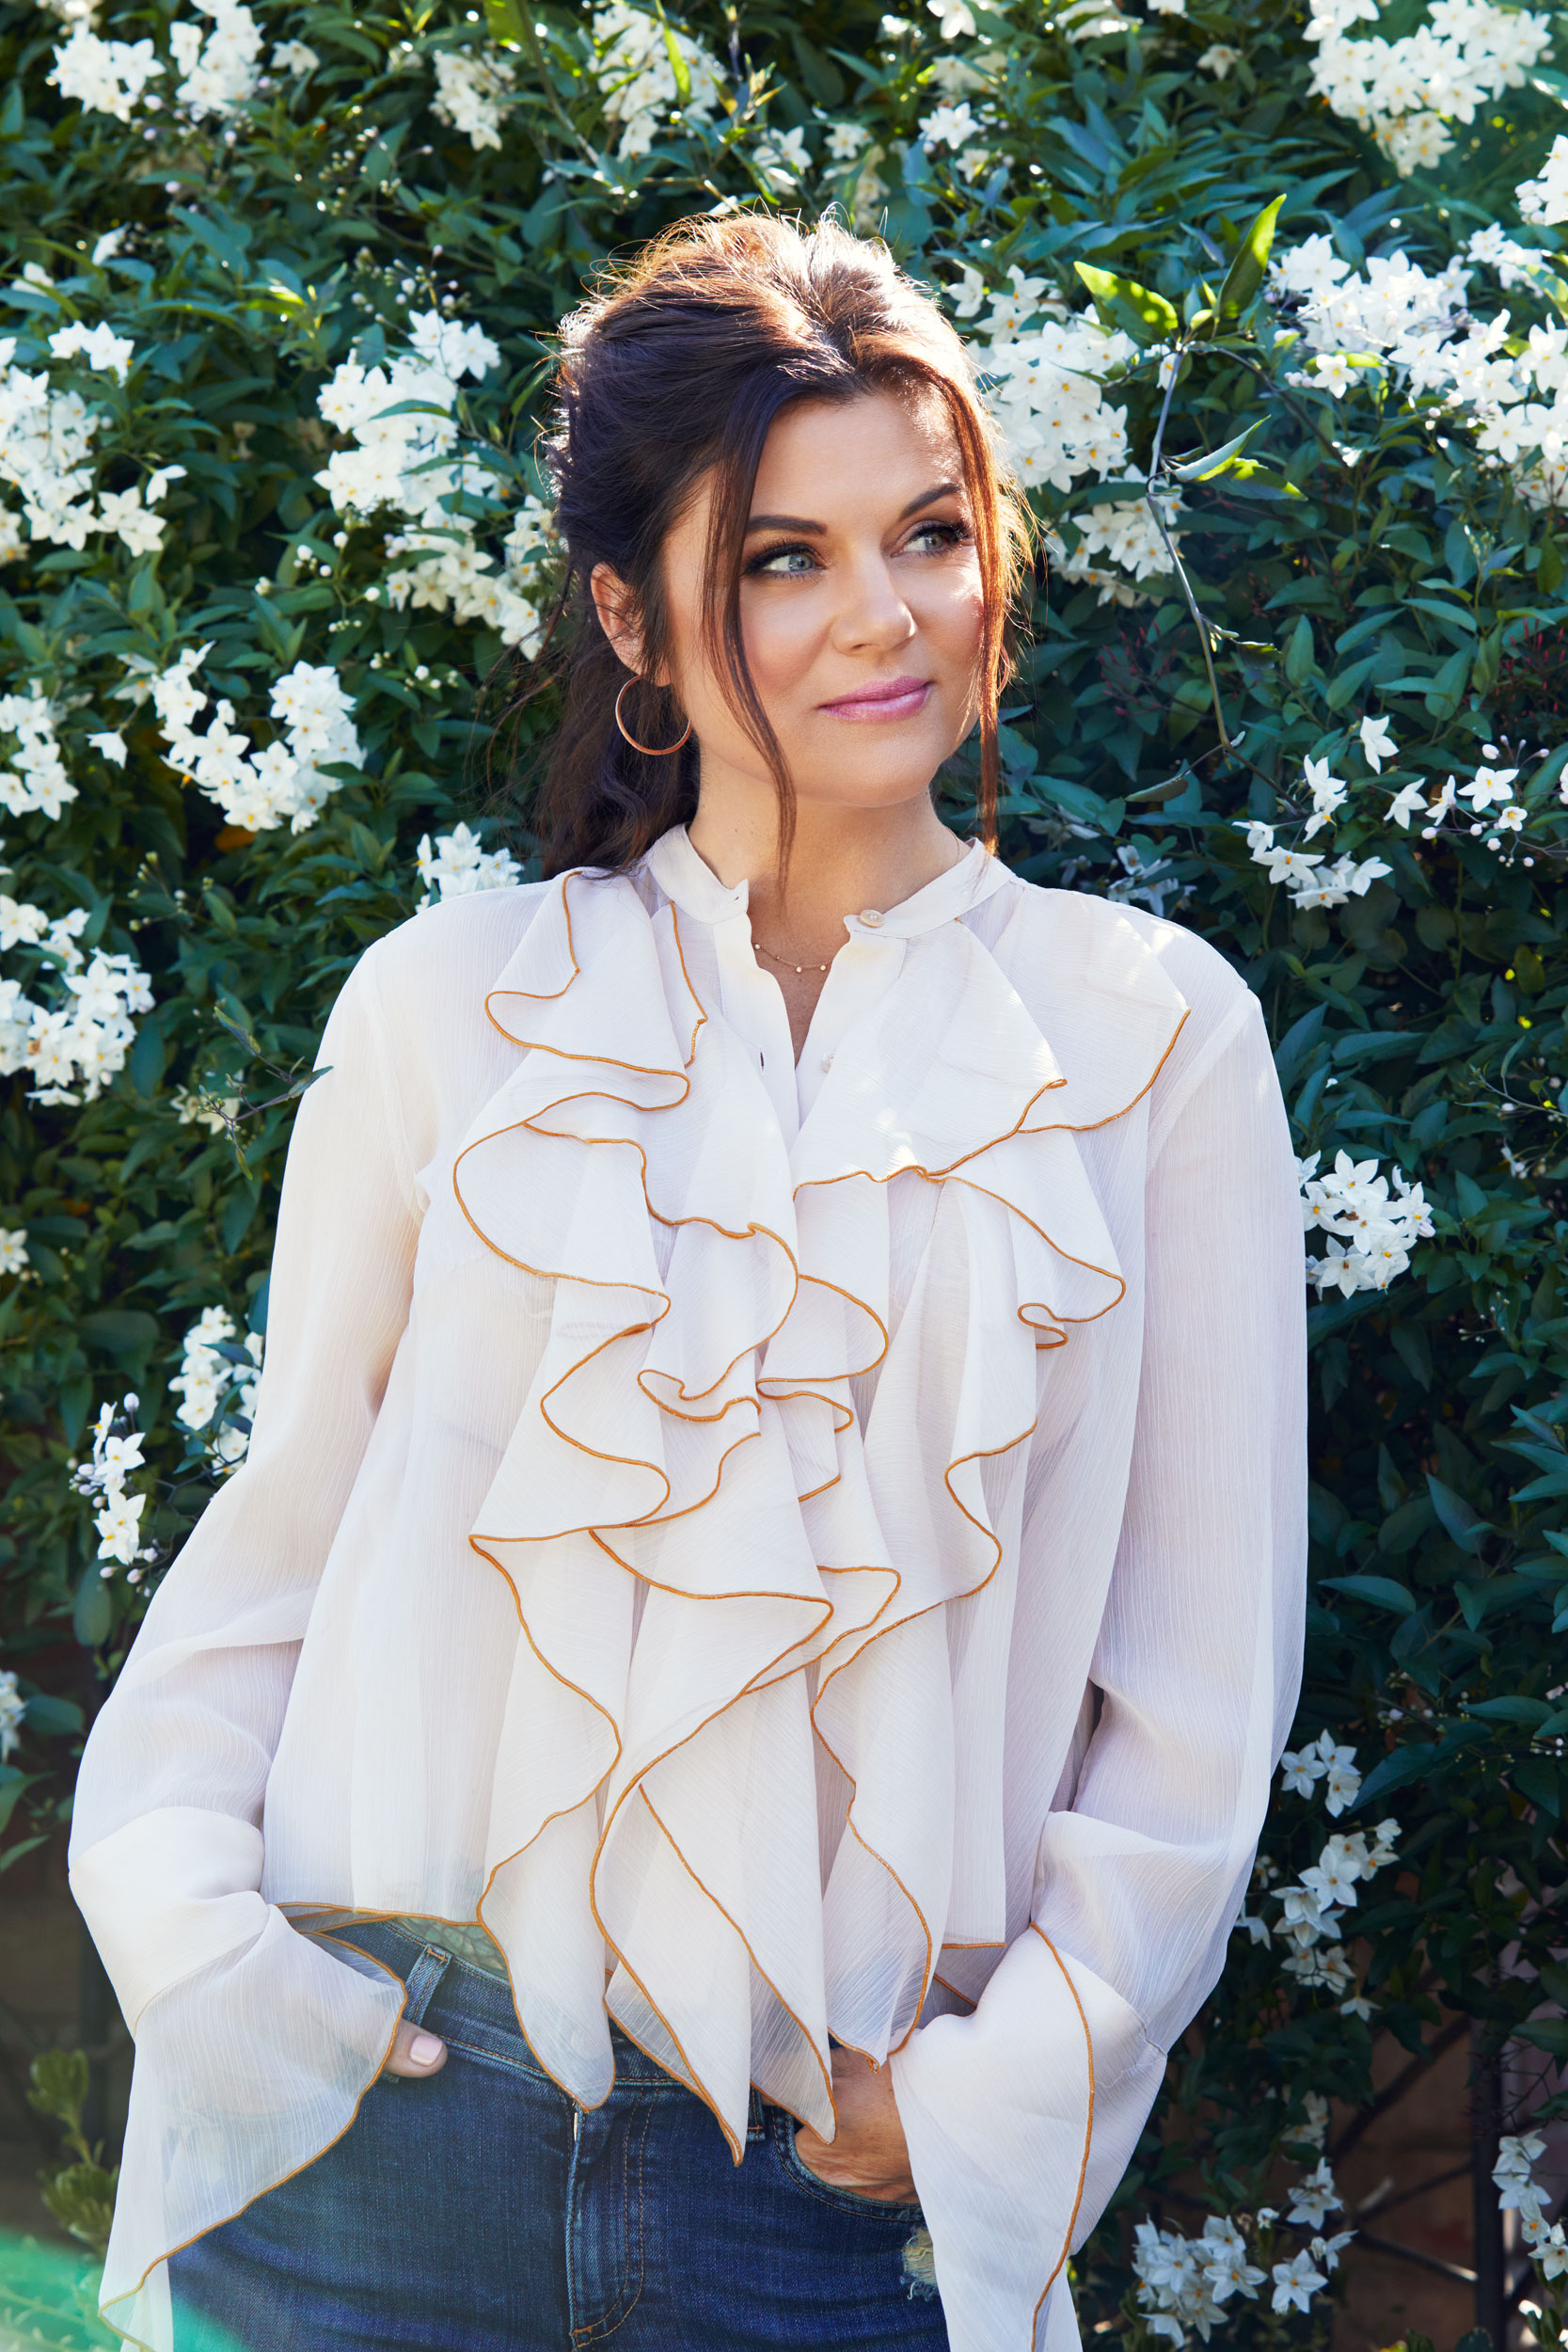 Tiffani Thiessen wearing a white blouse. Kim Genevieve Los Angeles Portrait Photographer